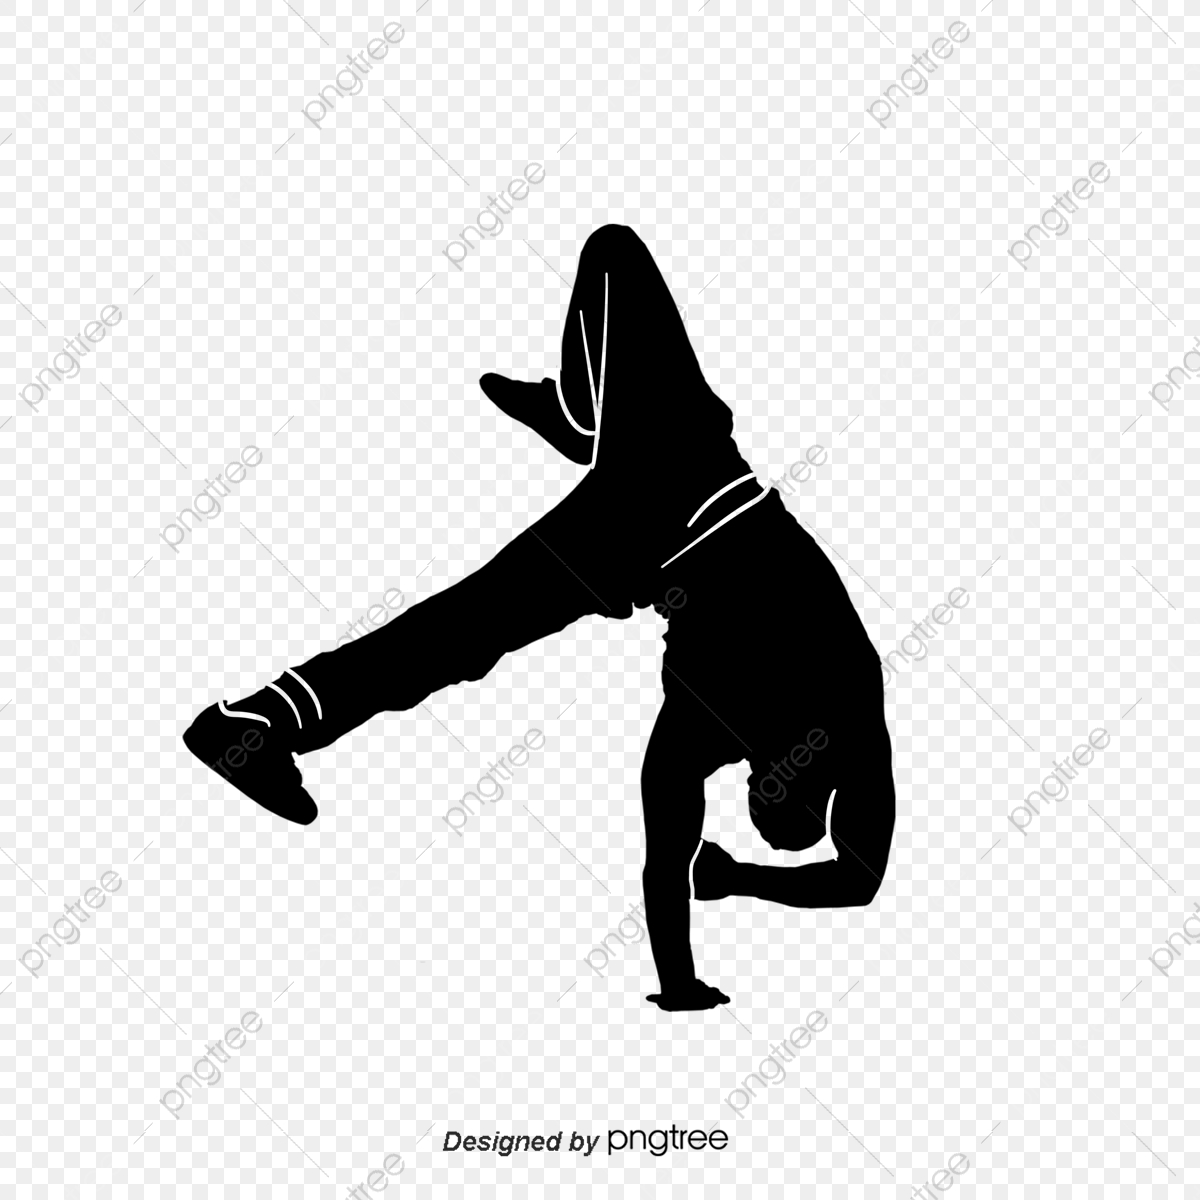 Cool Hip Hop Dance Silhouette Action Hand Painted Png Transparent Clipart Image And Psd File For Free Download